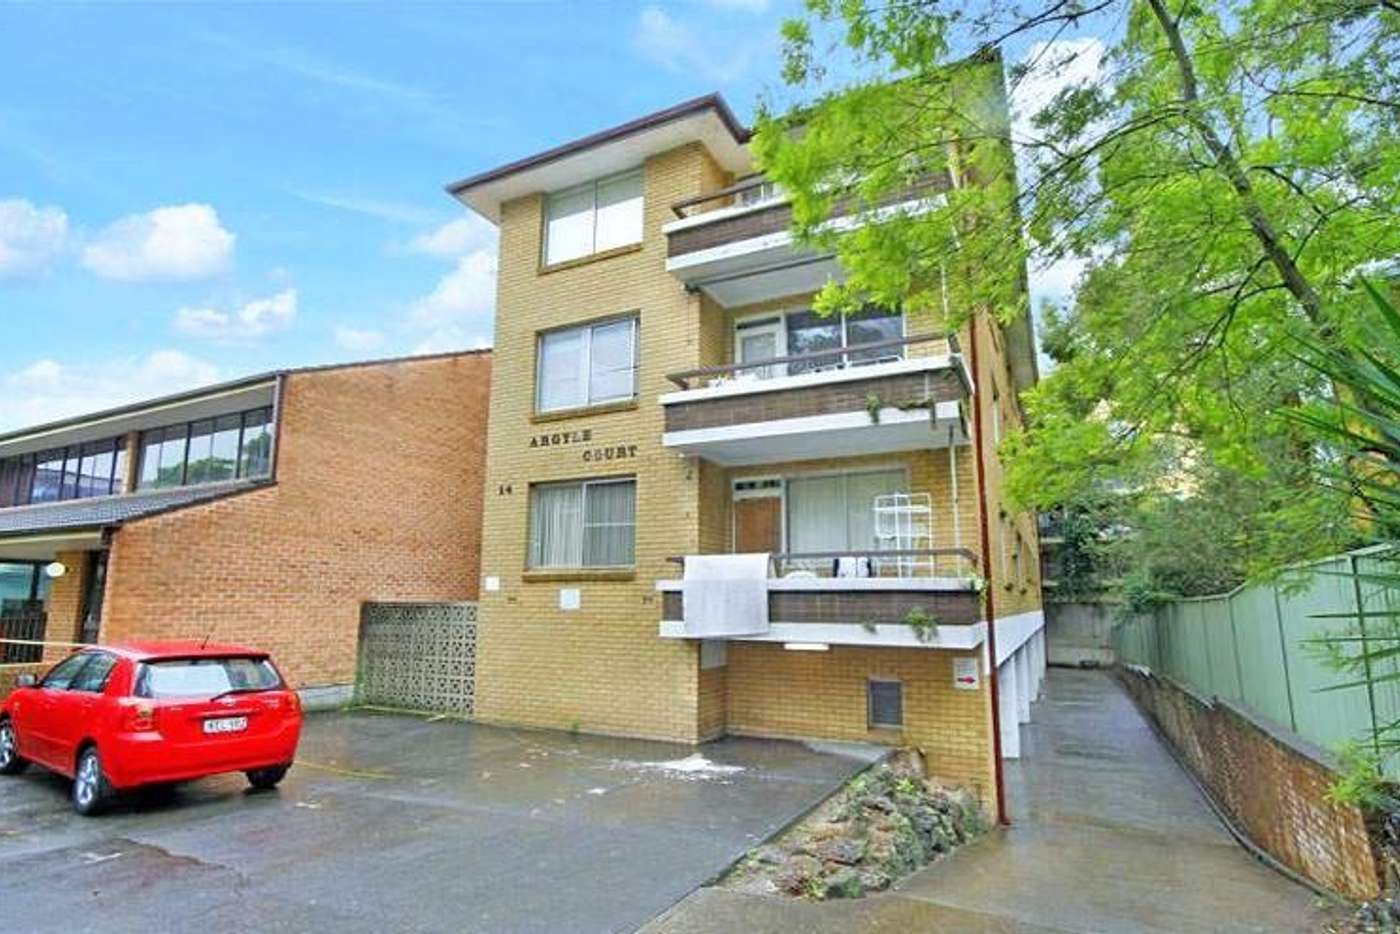 Main view of Homely apartment listing, 1/14 Sorrell Street, Parramatta NSW 2150